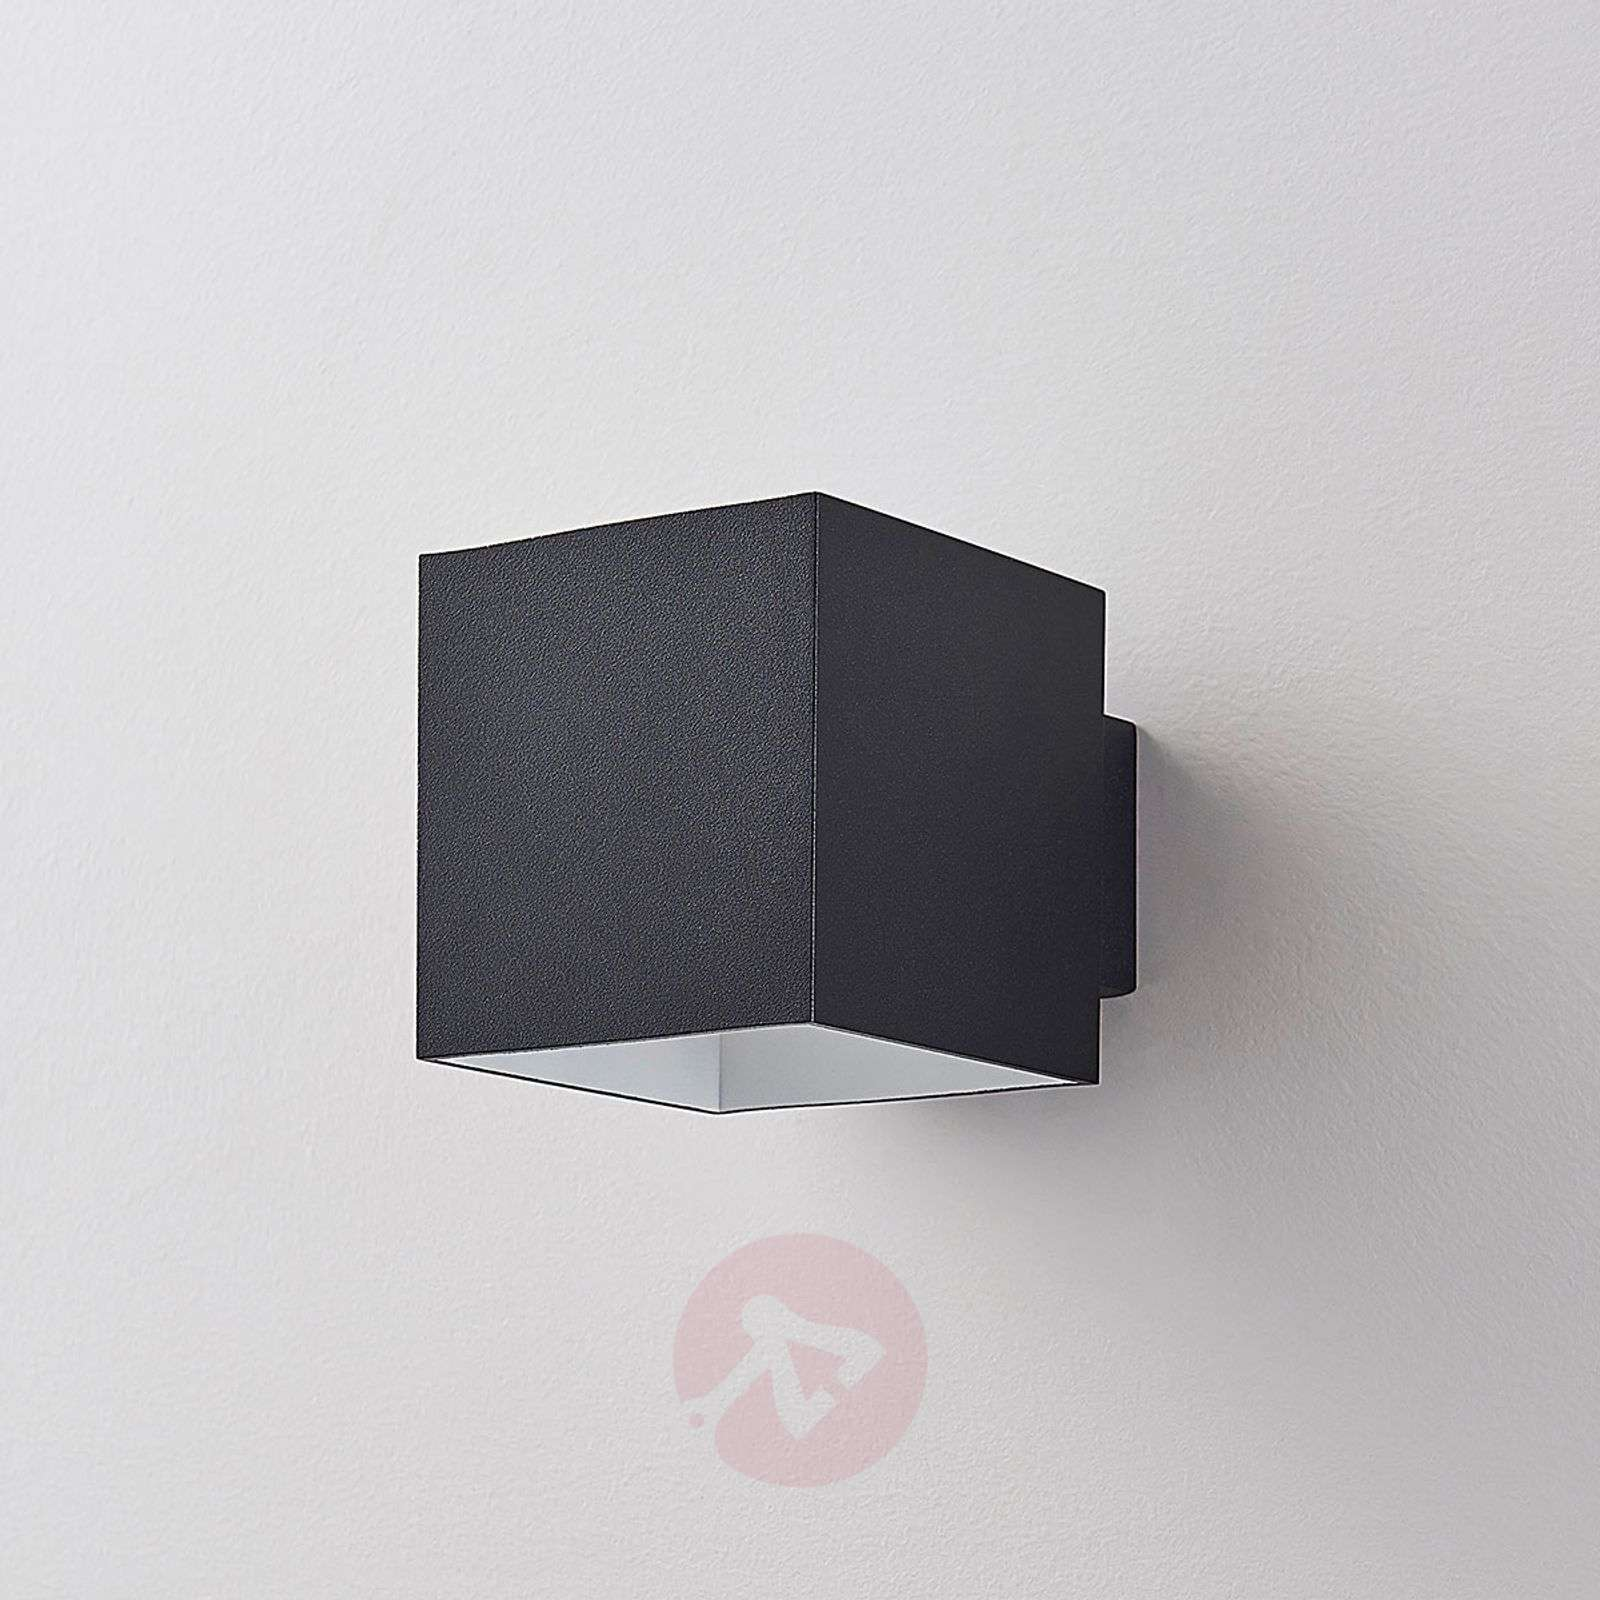 Black led wall lamp rocco cube shaped lights black led wall lamp rocco cube shaped 9621472 01 aloadofball Image collections